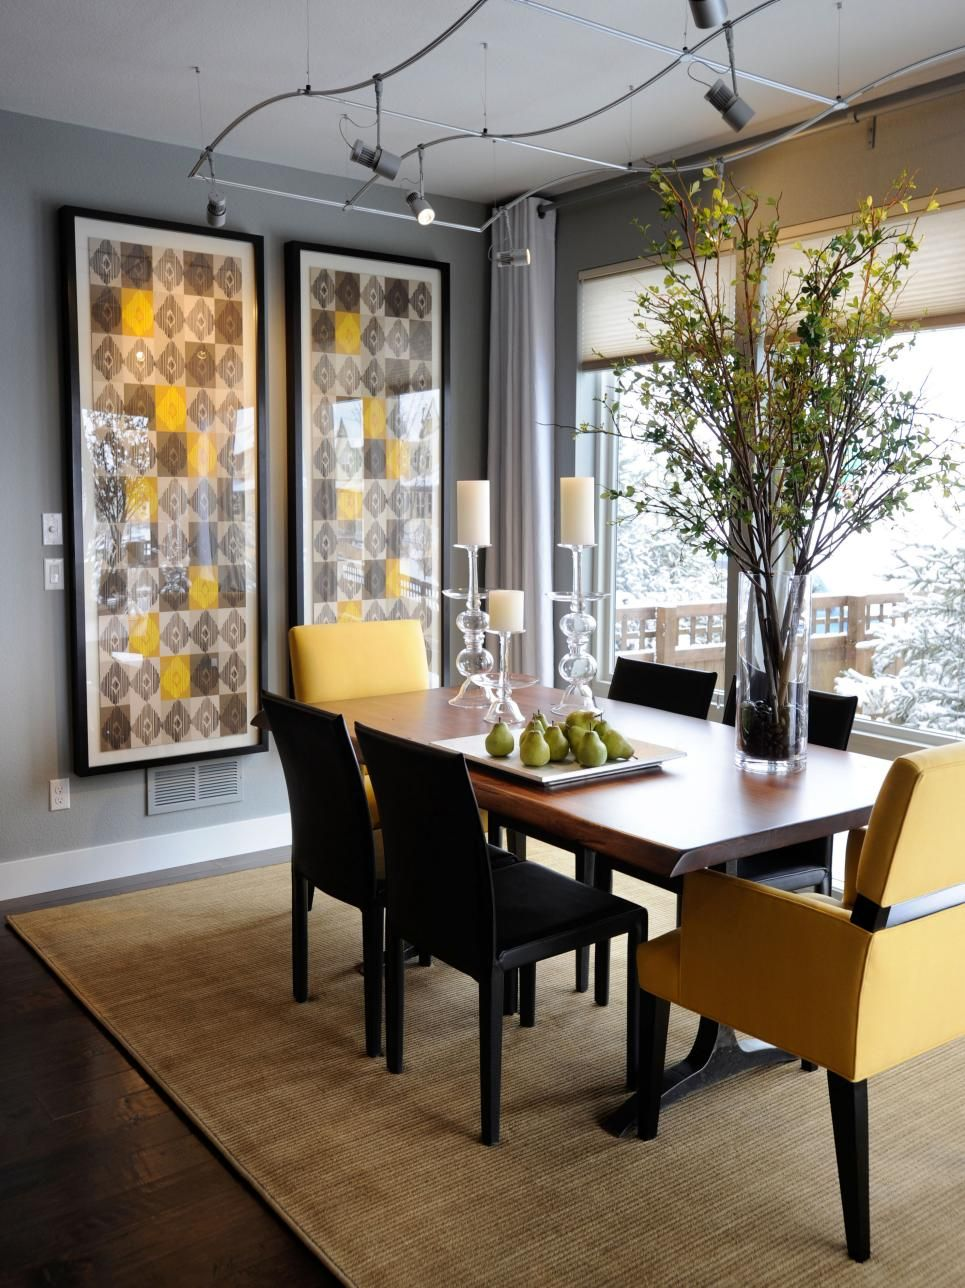 Gray Dining Room With Midcentury Modern Artwork  Yellow dining